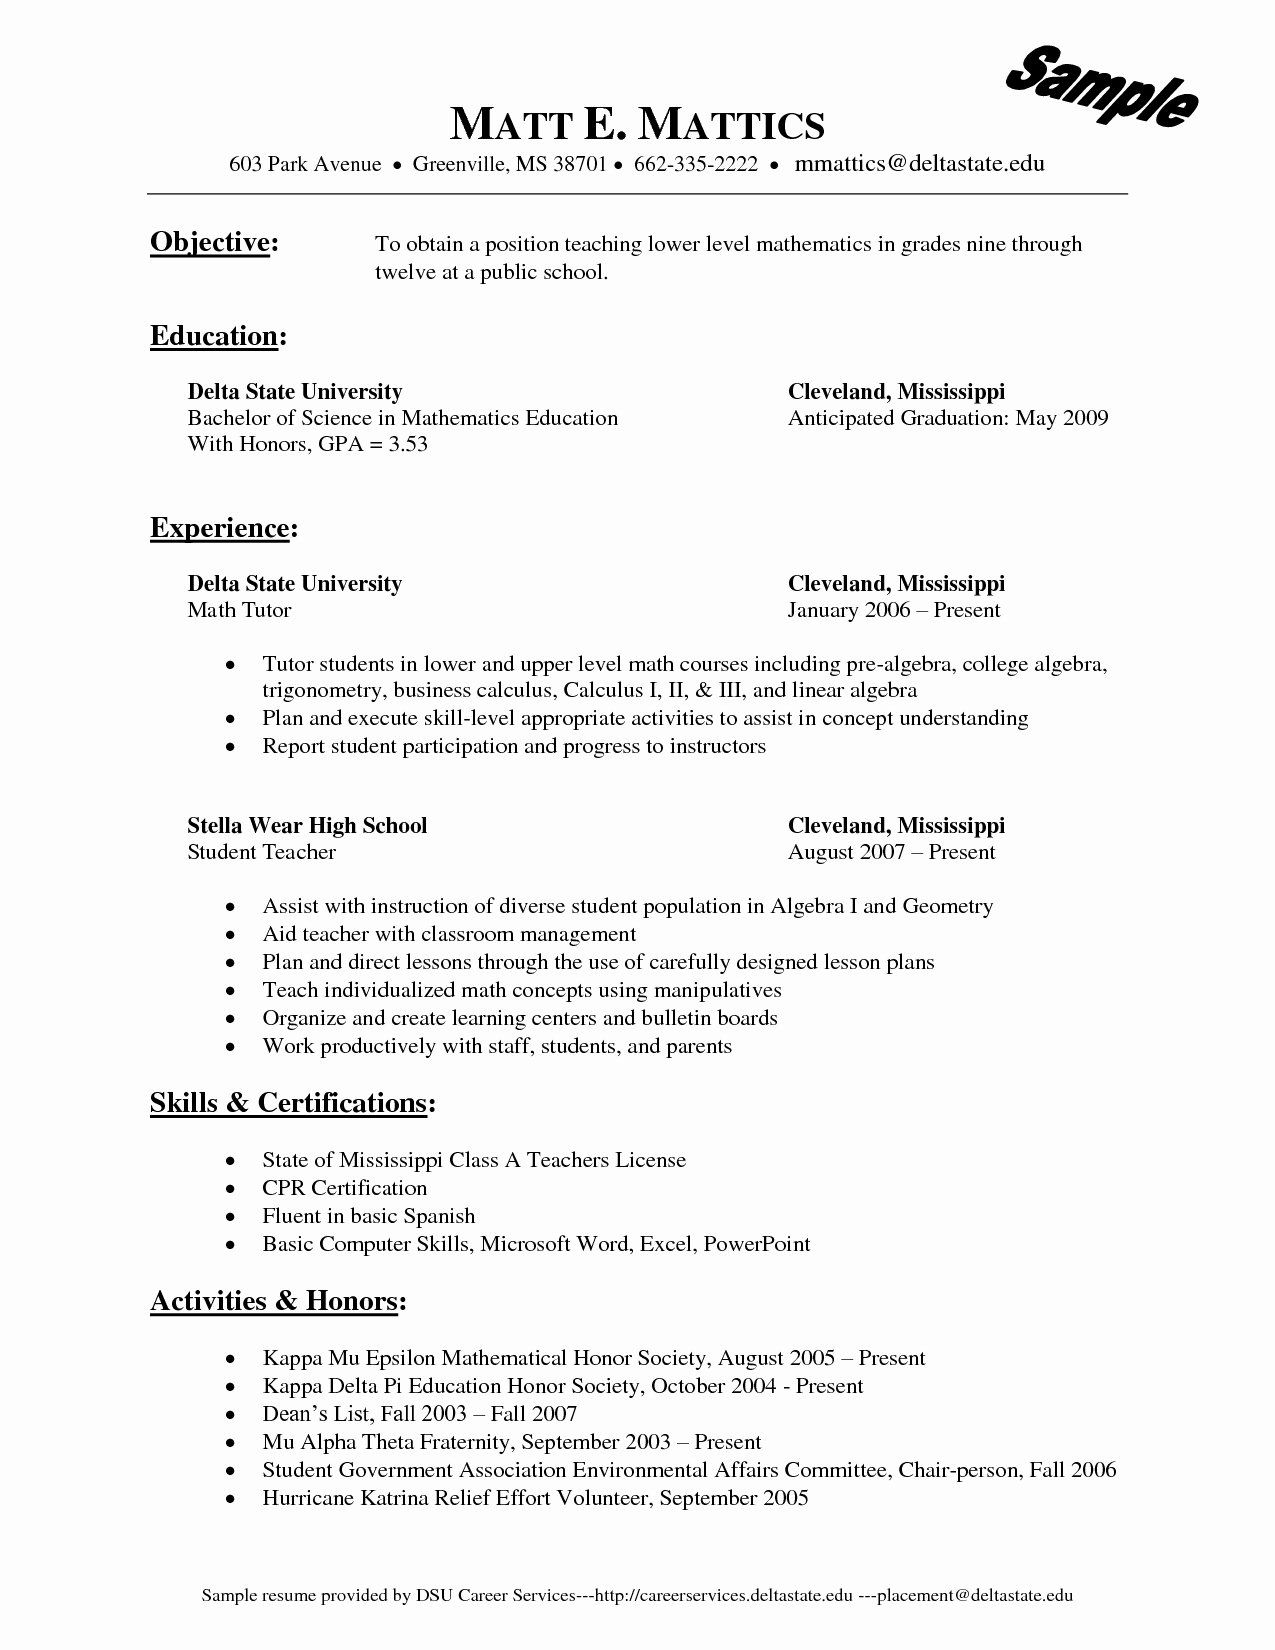 25 Free Resume Templates for Wordpad in 2020 (With images